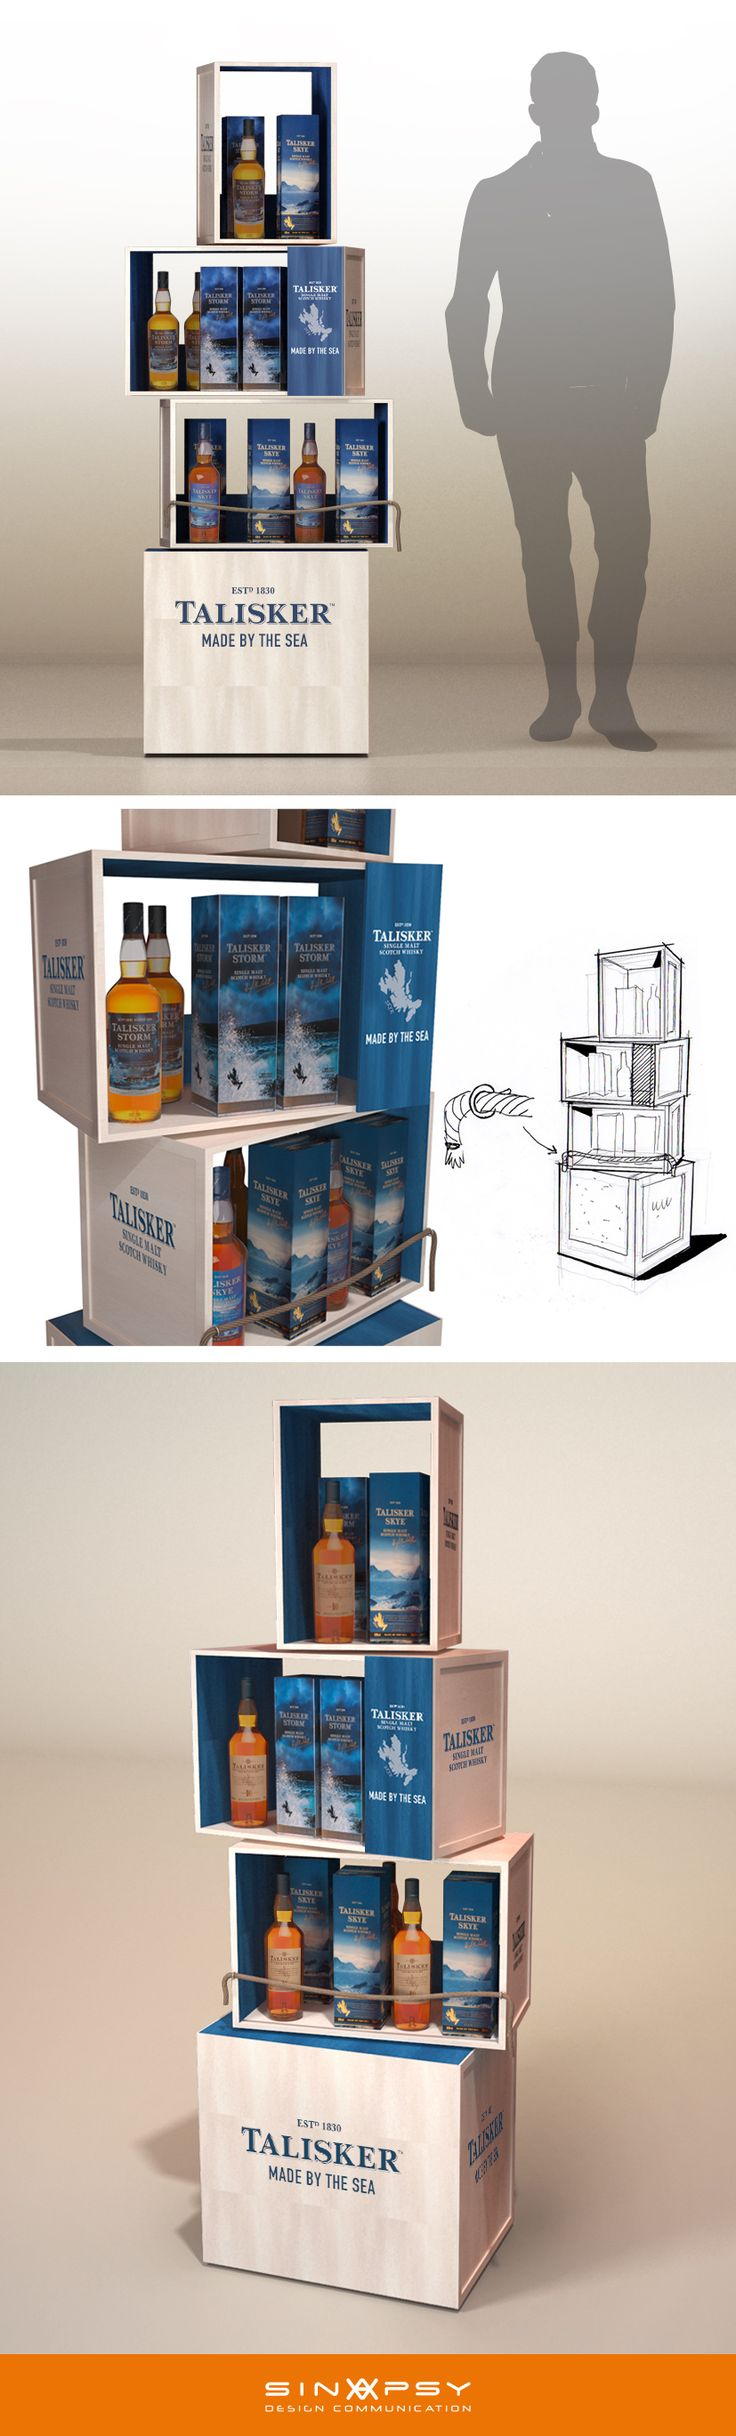 Talisker Pos Display project